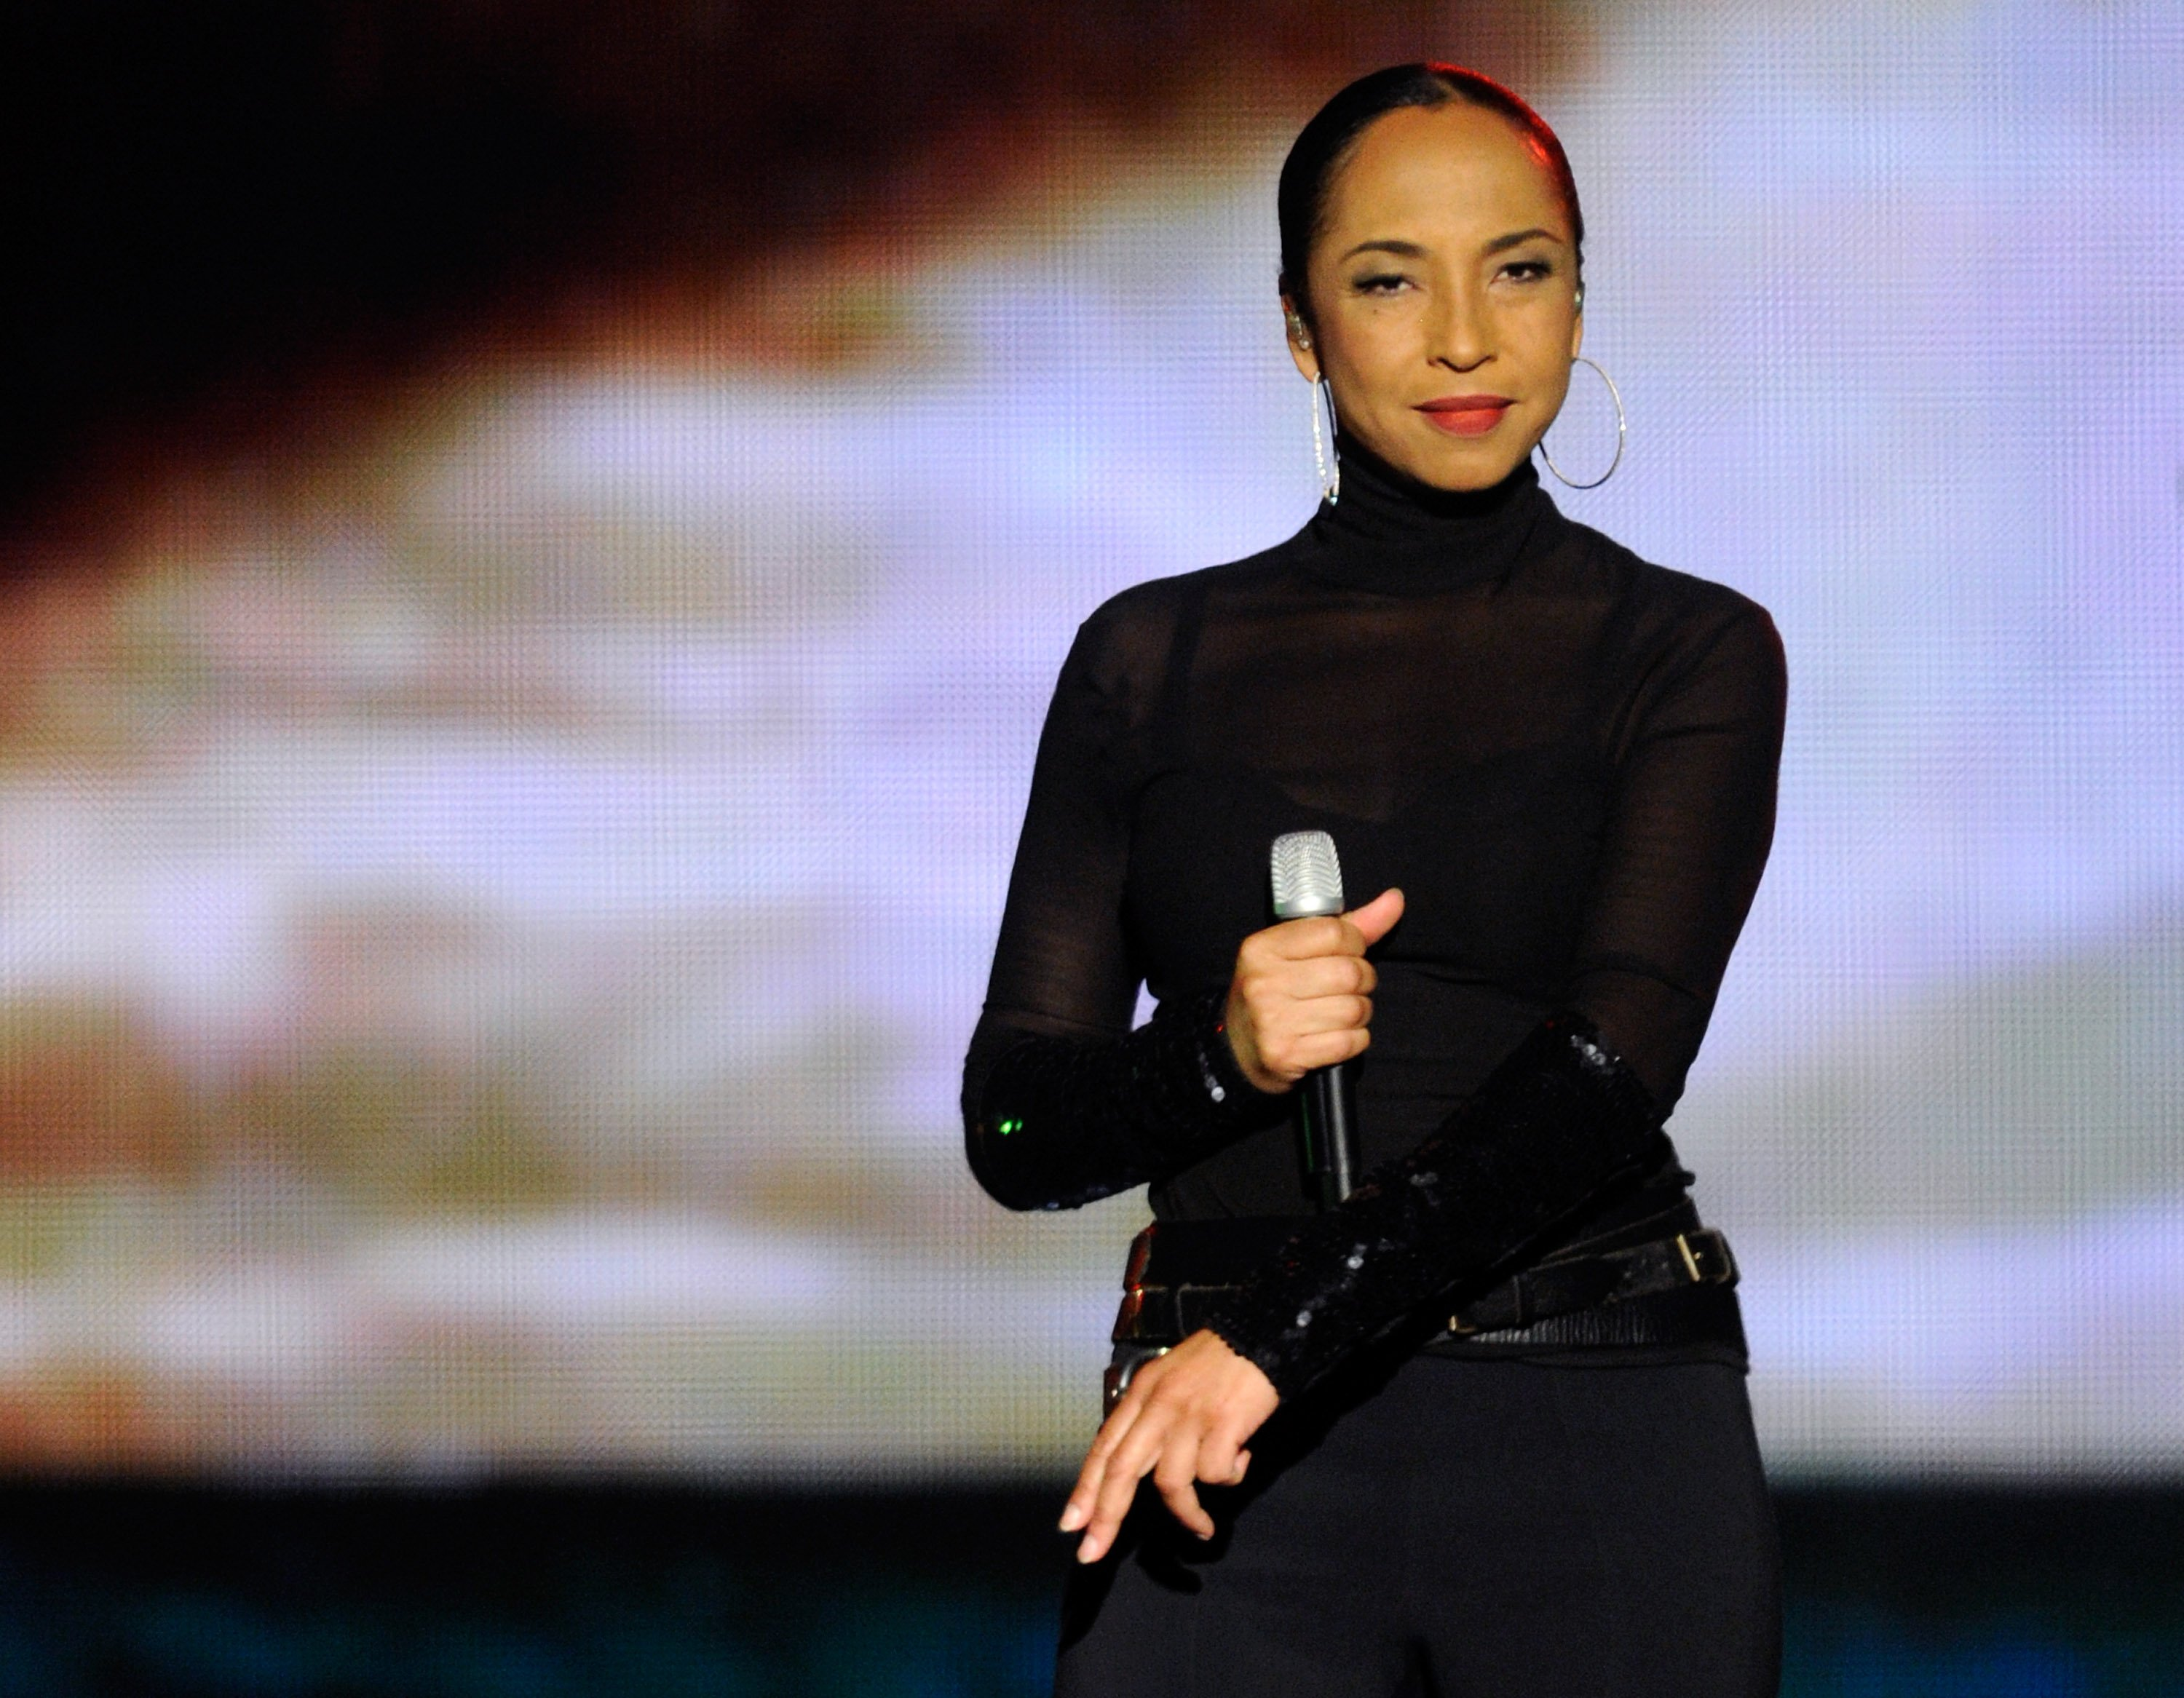 Sade on stage at the MGM Grand Garden Arena September 3, 2011 in Las Vegas, Nevada. | Source: Getty Images